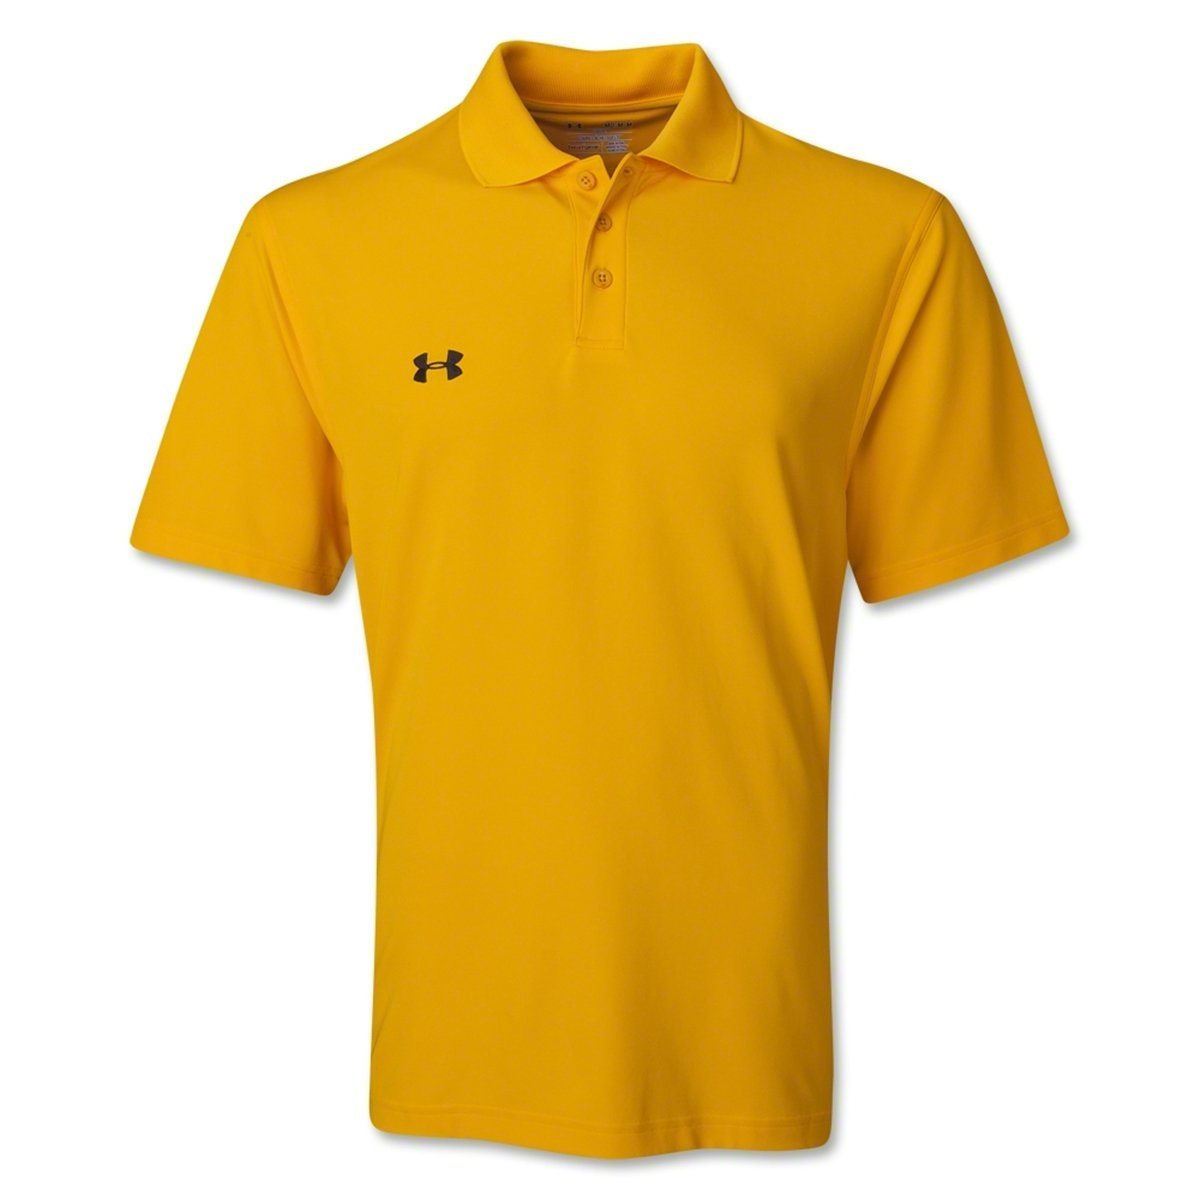 Under Armour Team Performance Polo Steeltown Gold/Black Small